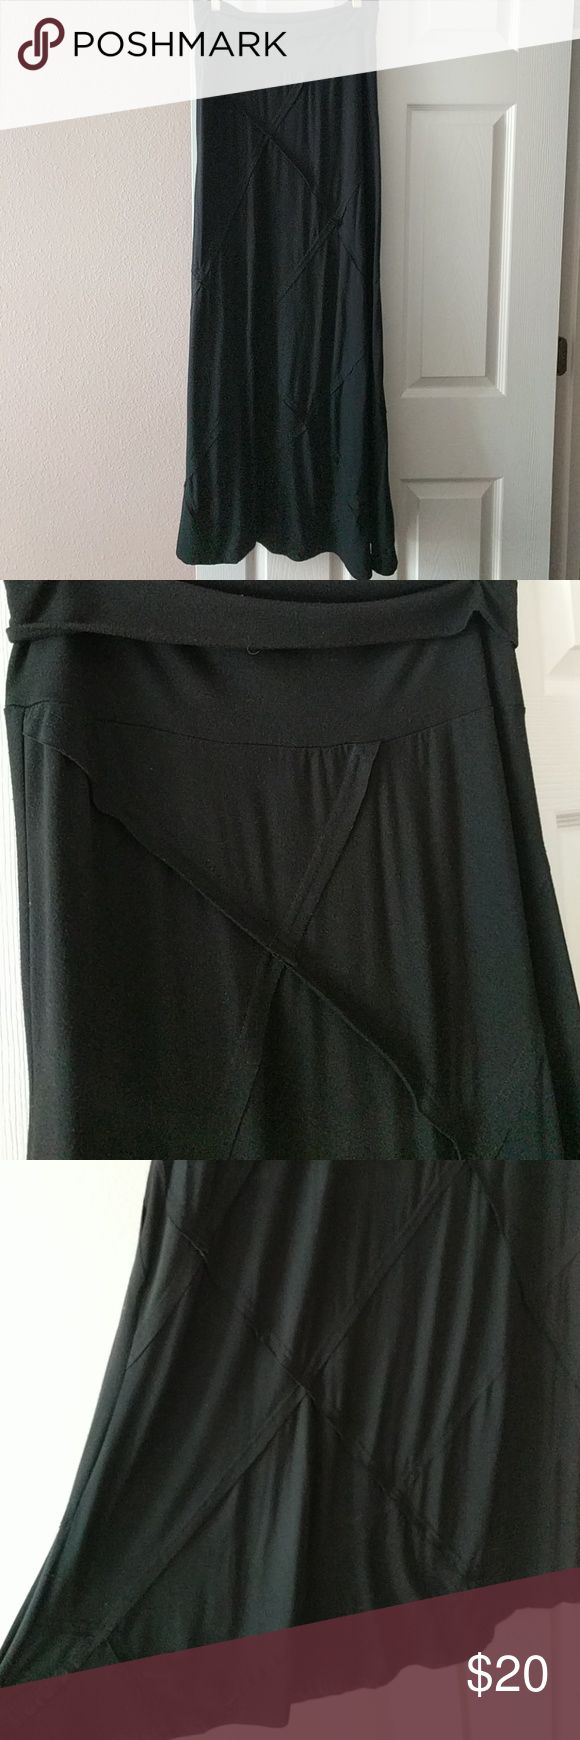 Black maxi skirt Cotton and spandex black maxi skirt with crisscross detail. Incredibly comfortable and great condition. Anthropologie Skirts Maxi